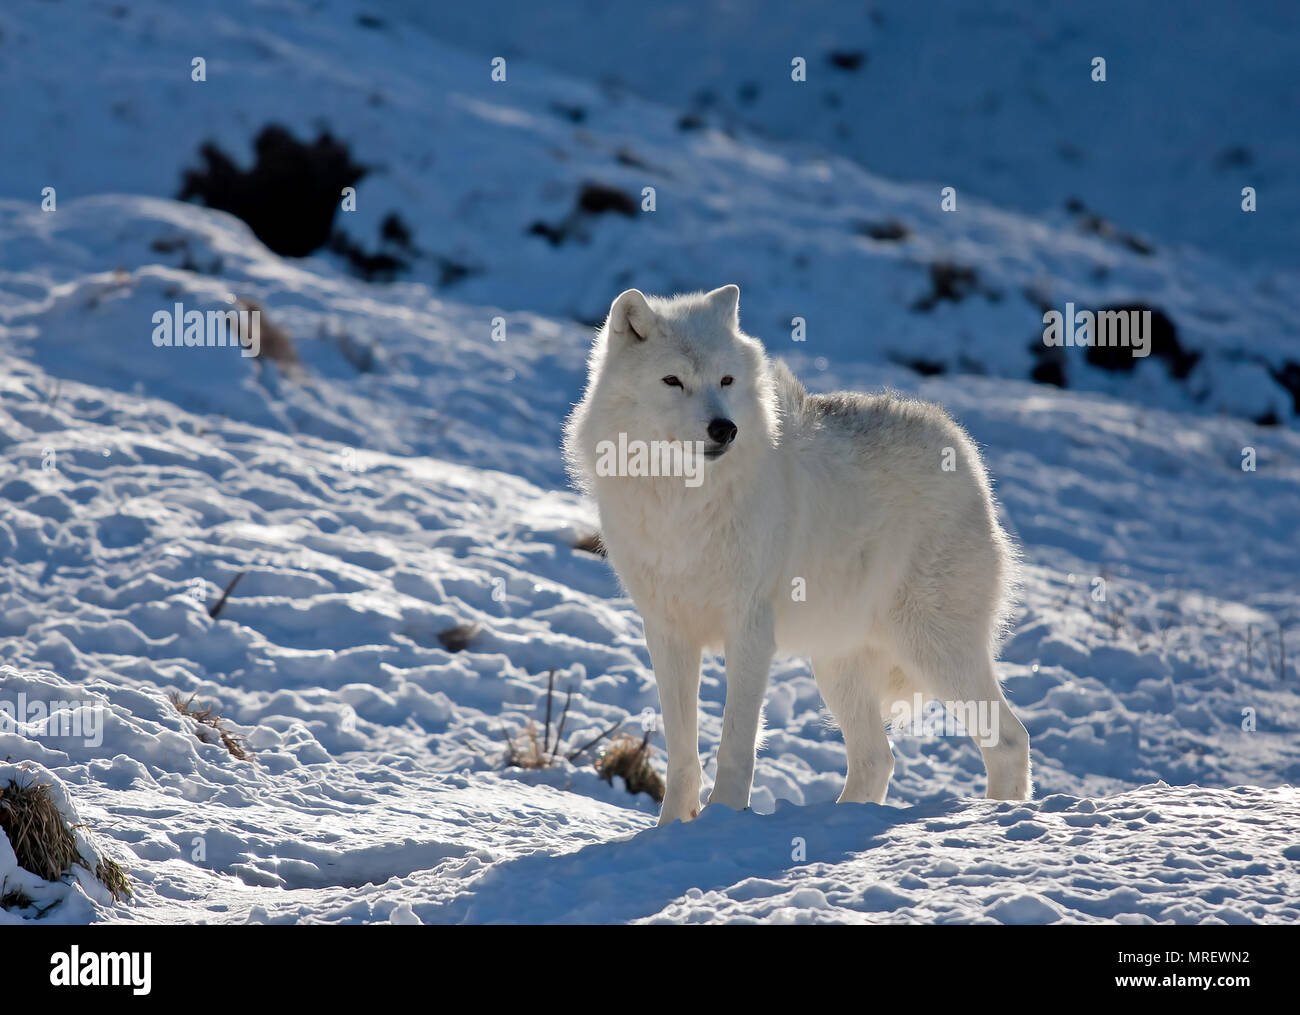 A lone Arctic wolves (Canis lupus arctos) standing in the winter snow Canada - Stock Image